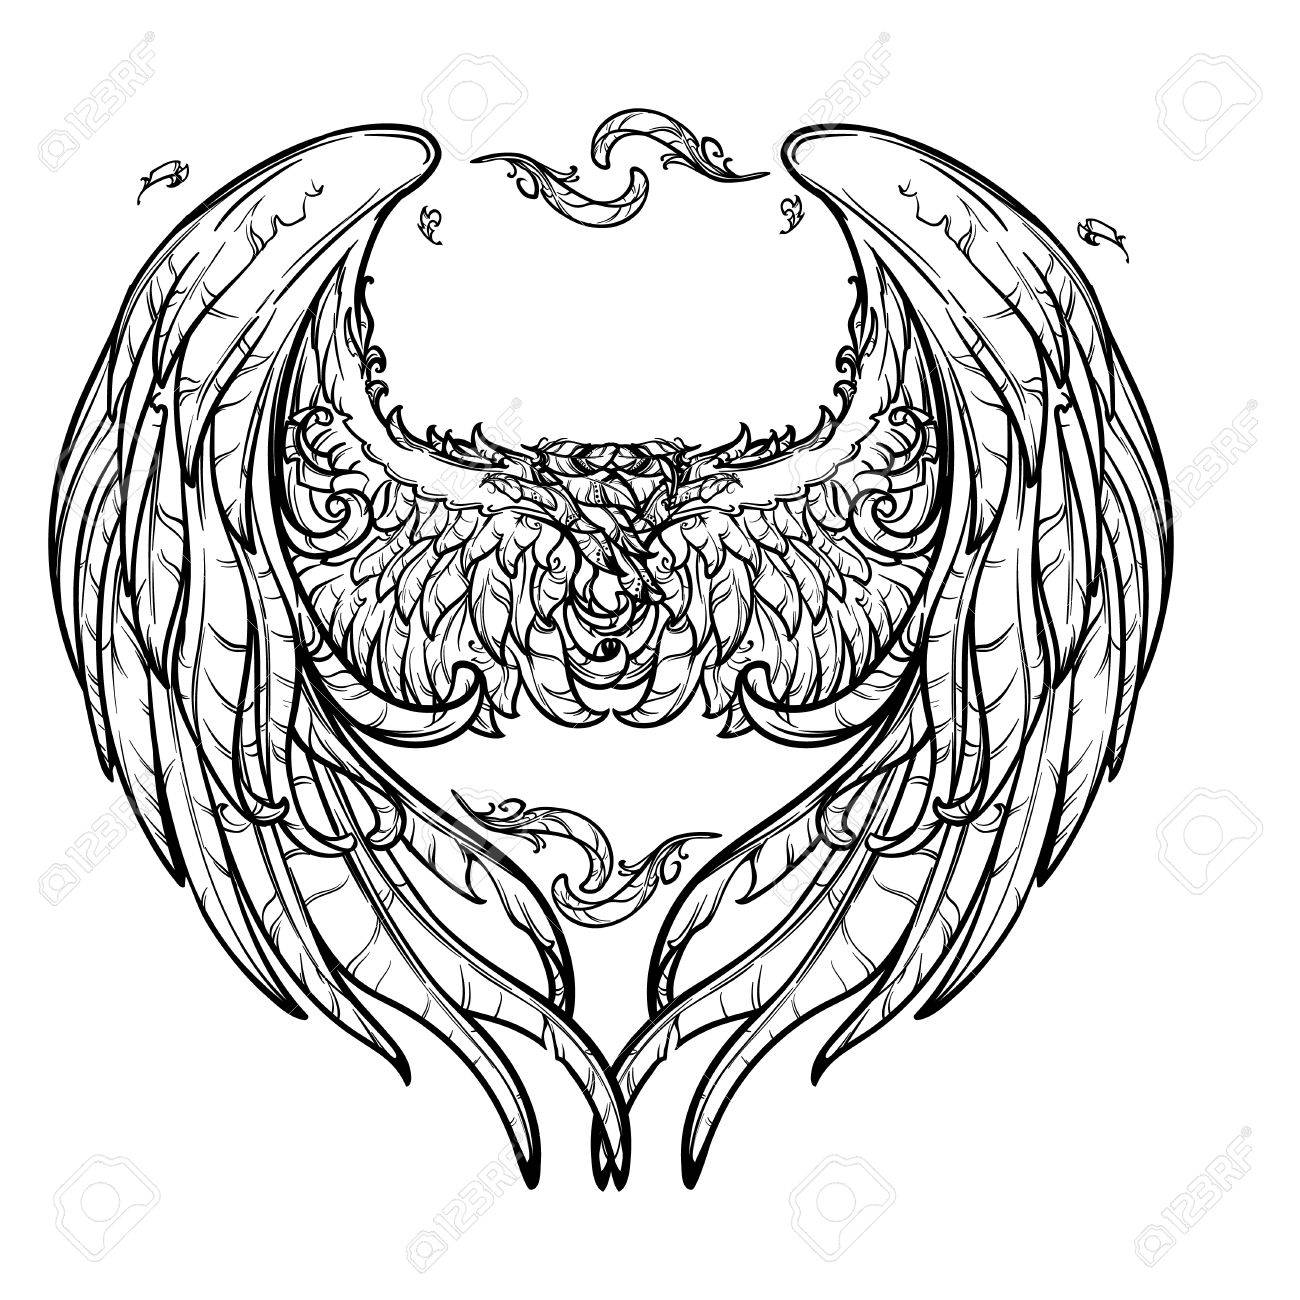 1300x1300 A Pair Of Angel Wings Arranged In A Shape Of A Heart. St